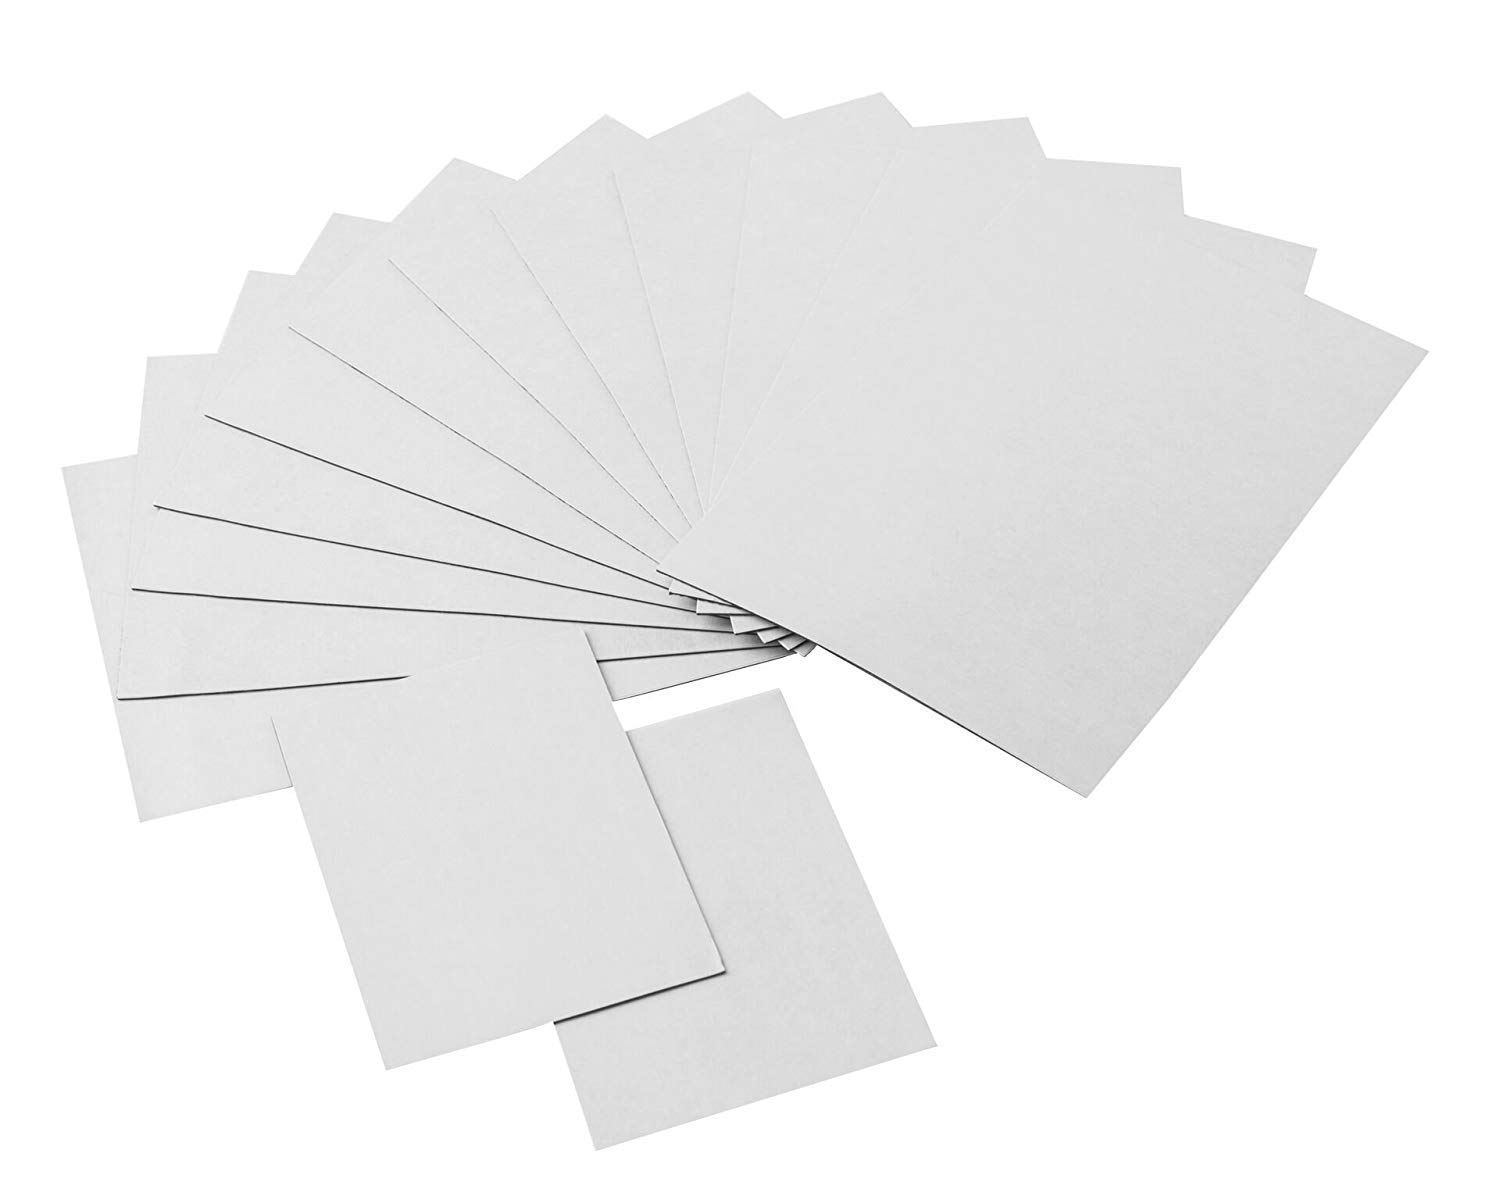 ⚡Corneria 12 Pack 4X6 Self Adhesive Magnetic Sheets 20mil Magnets Sticker-For DIY Diecut Craft Projects⚡